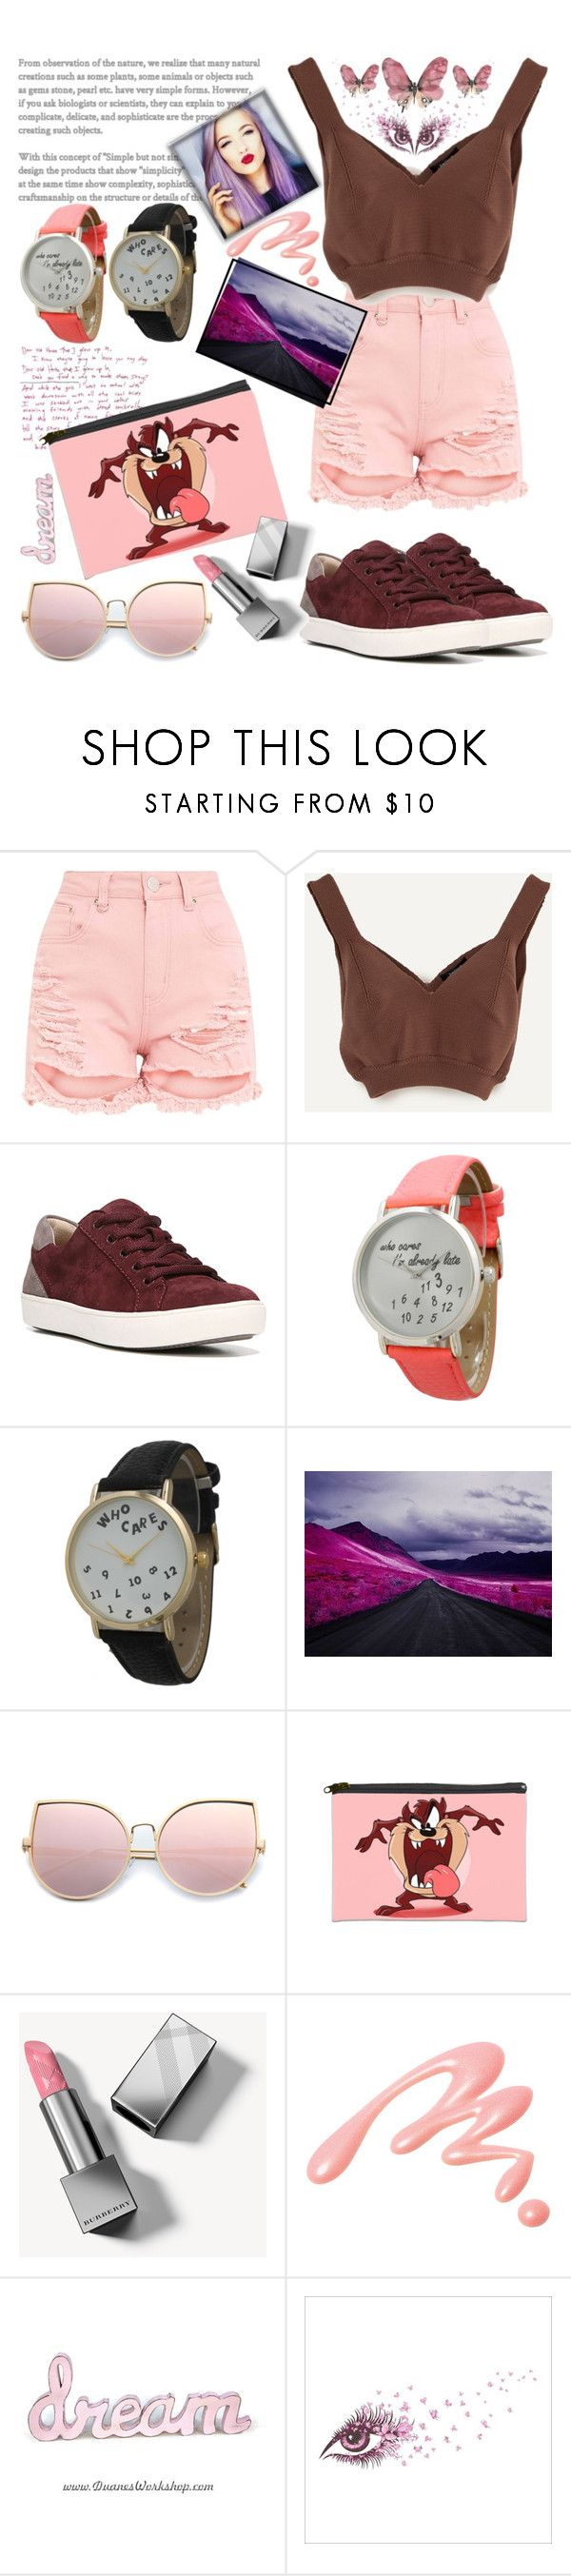 """""""I am funny but not a bunny 🔥💋🔥"""" by she-fashionlove ❤ liked on Polyvore featuring Naturalizer, Olivia Pratt, National Geographic Home, Burberry and Chantecaille"""